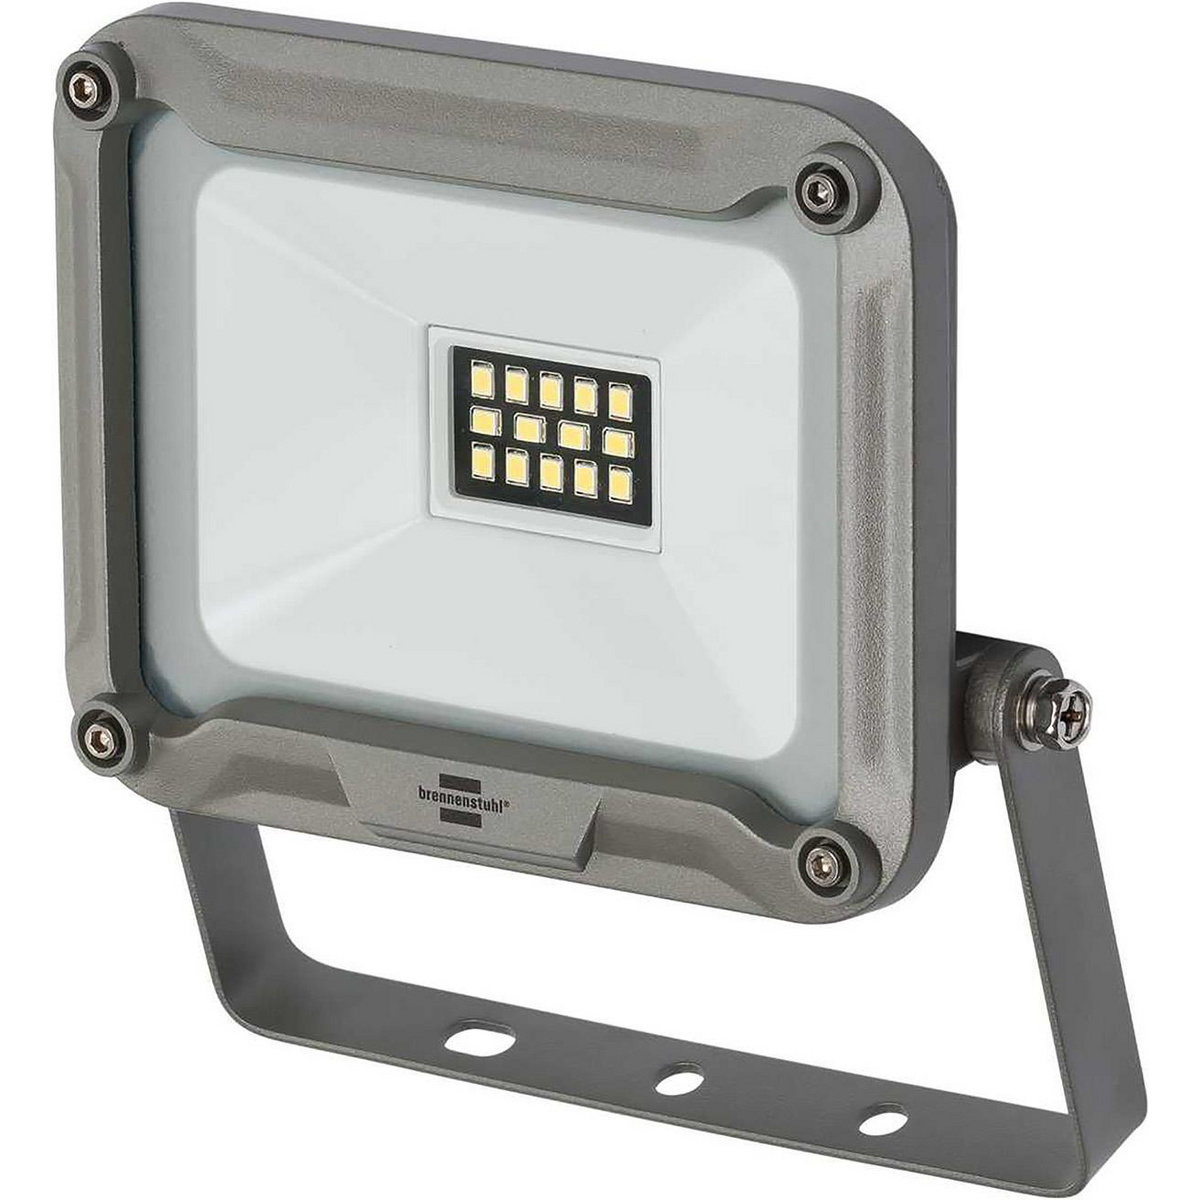 LED light with extra bright Everlight SMD LEDs. User-friendly assembly thanks to external, watertight connection terminal. With safety glass. Solid and modern aluminum housing. Adjustable mounting bracket for mounting. In colorful display package. This fi